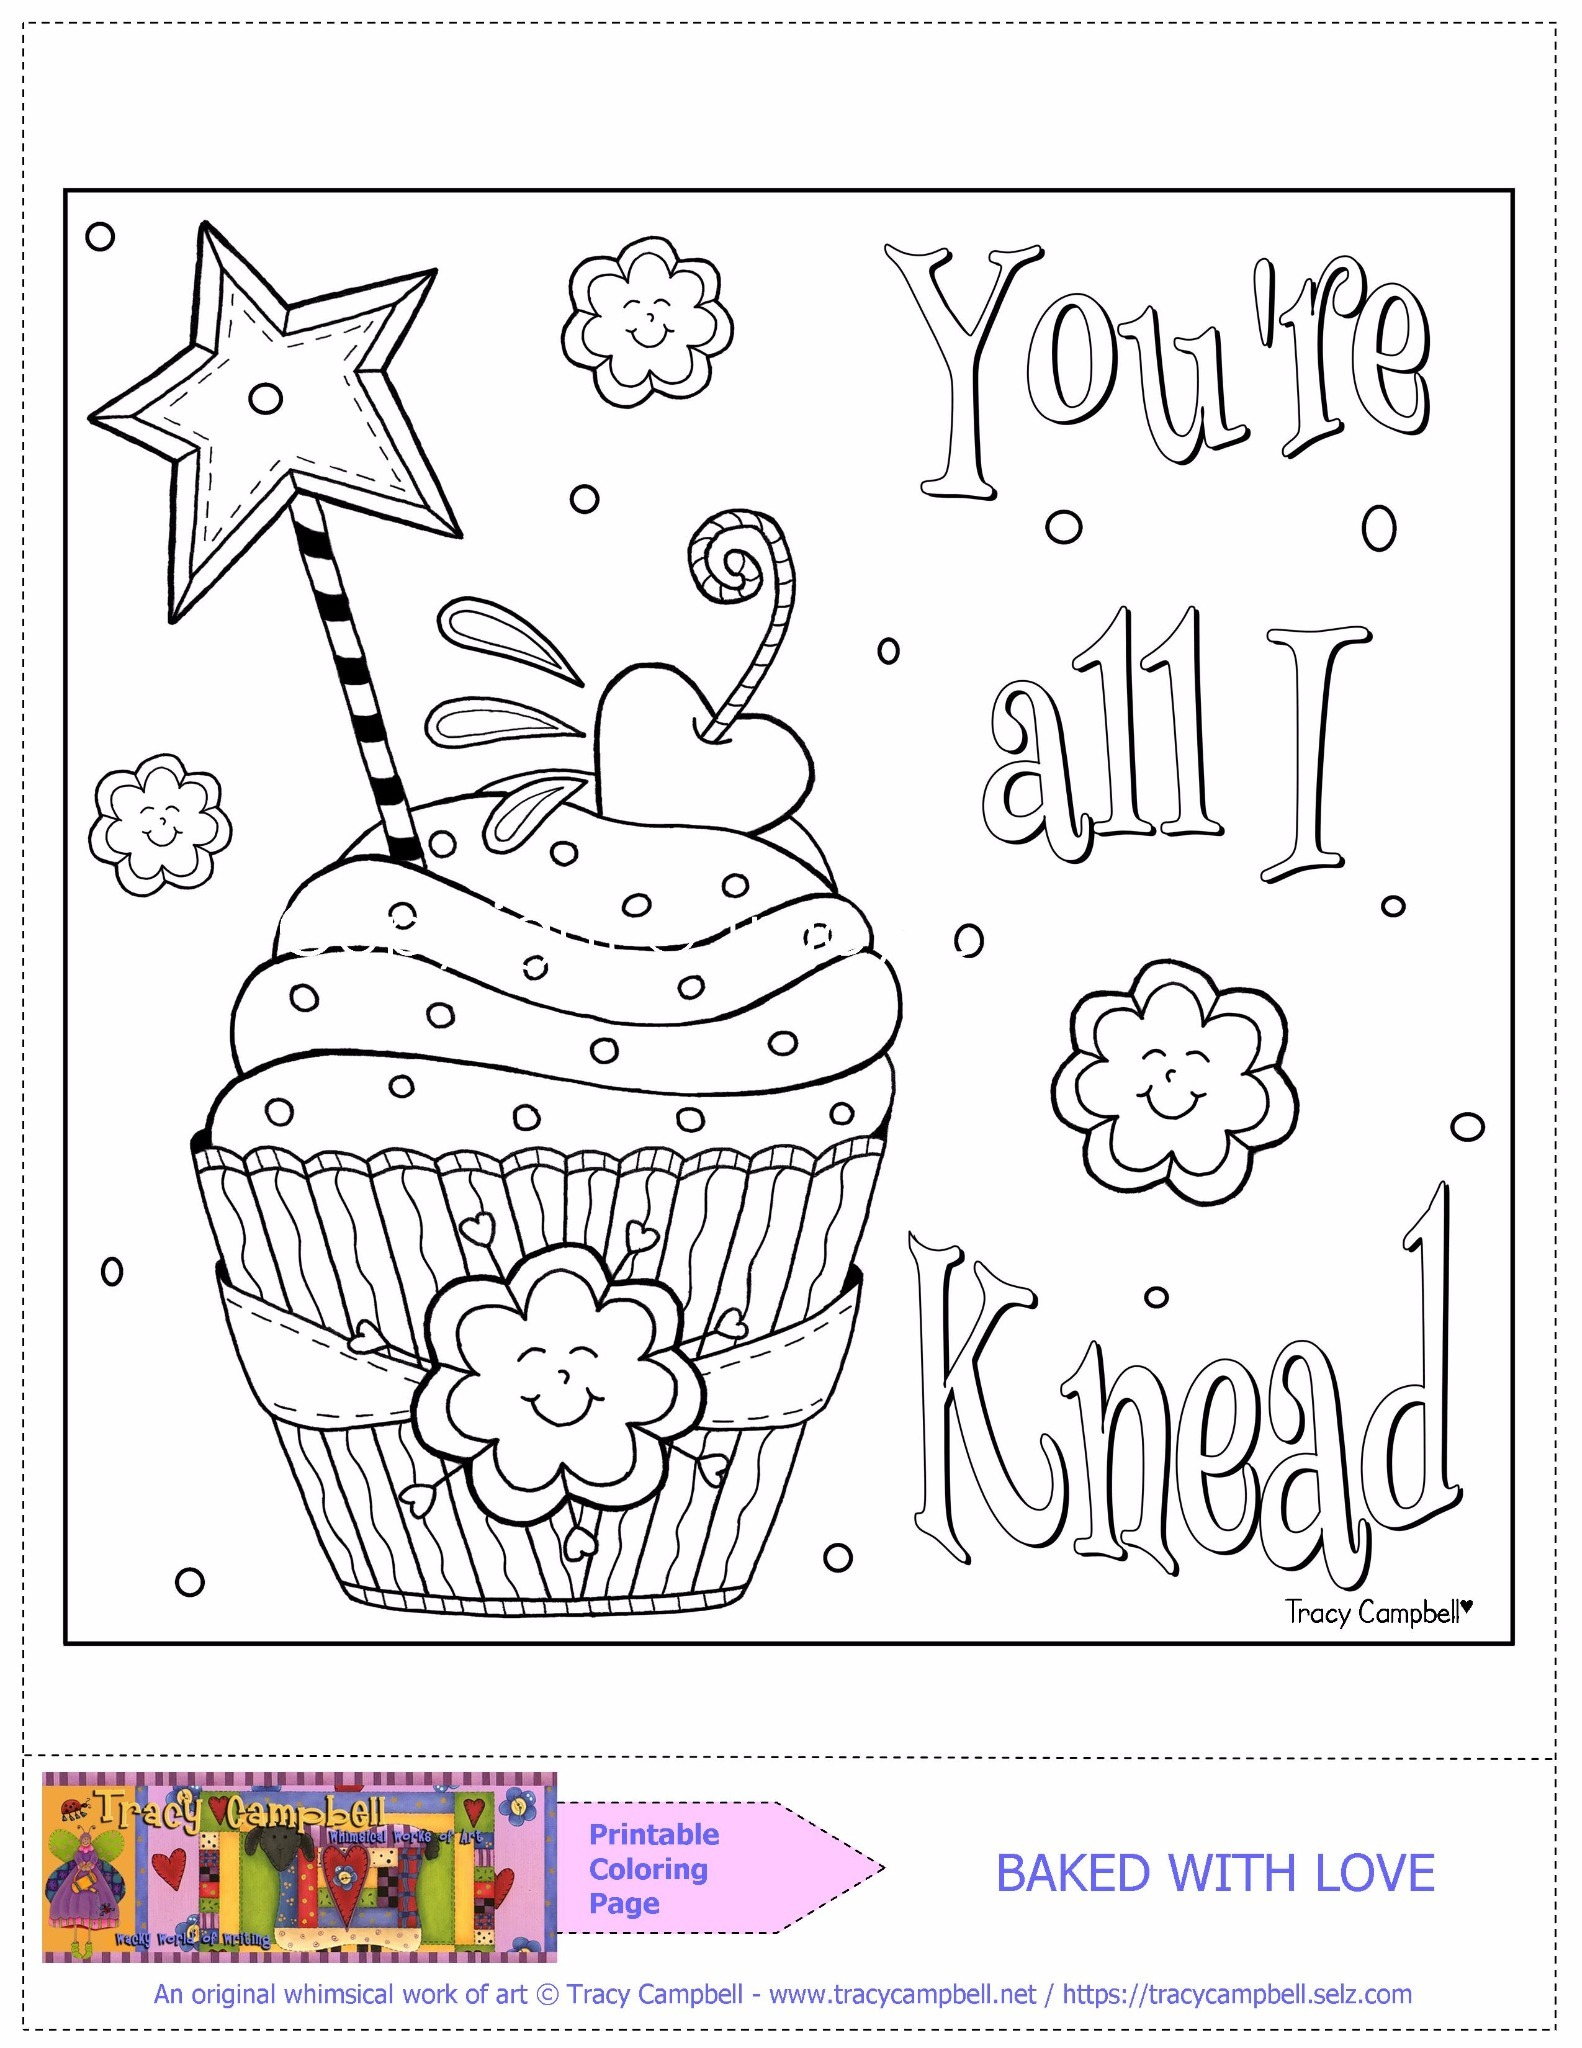 PRINTABLE COLORING PAGE—BAKED WITH LOVE